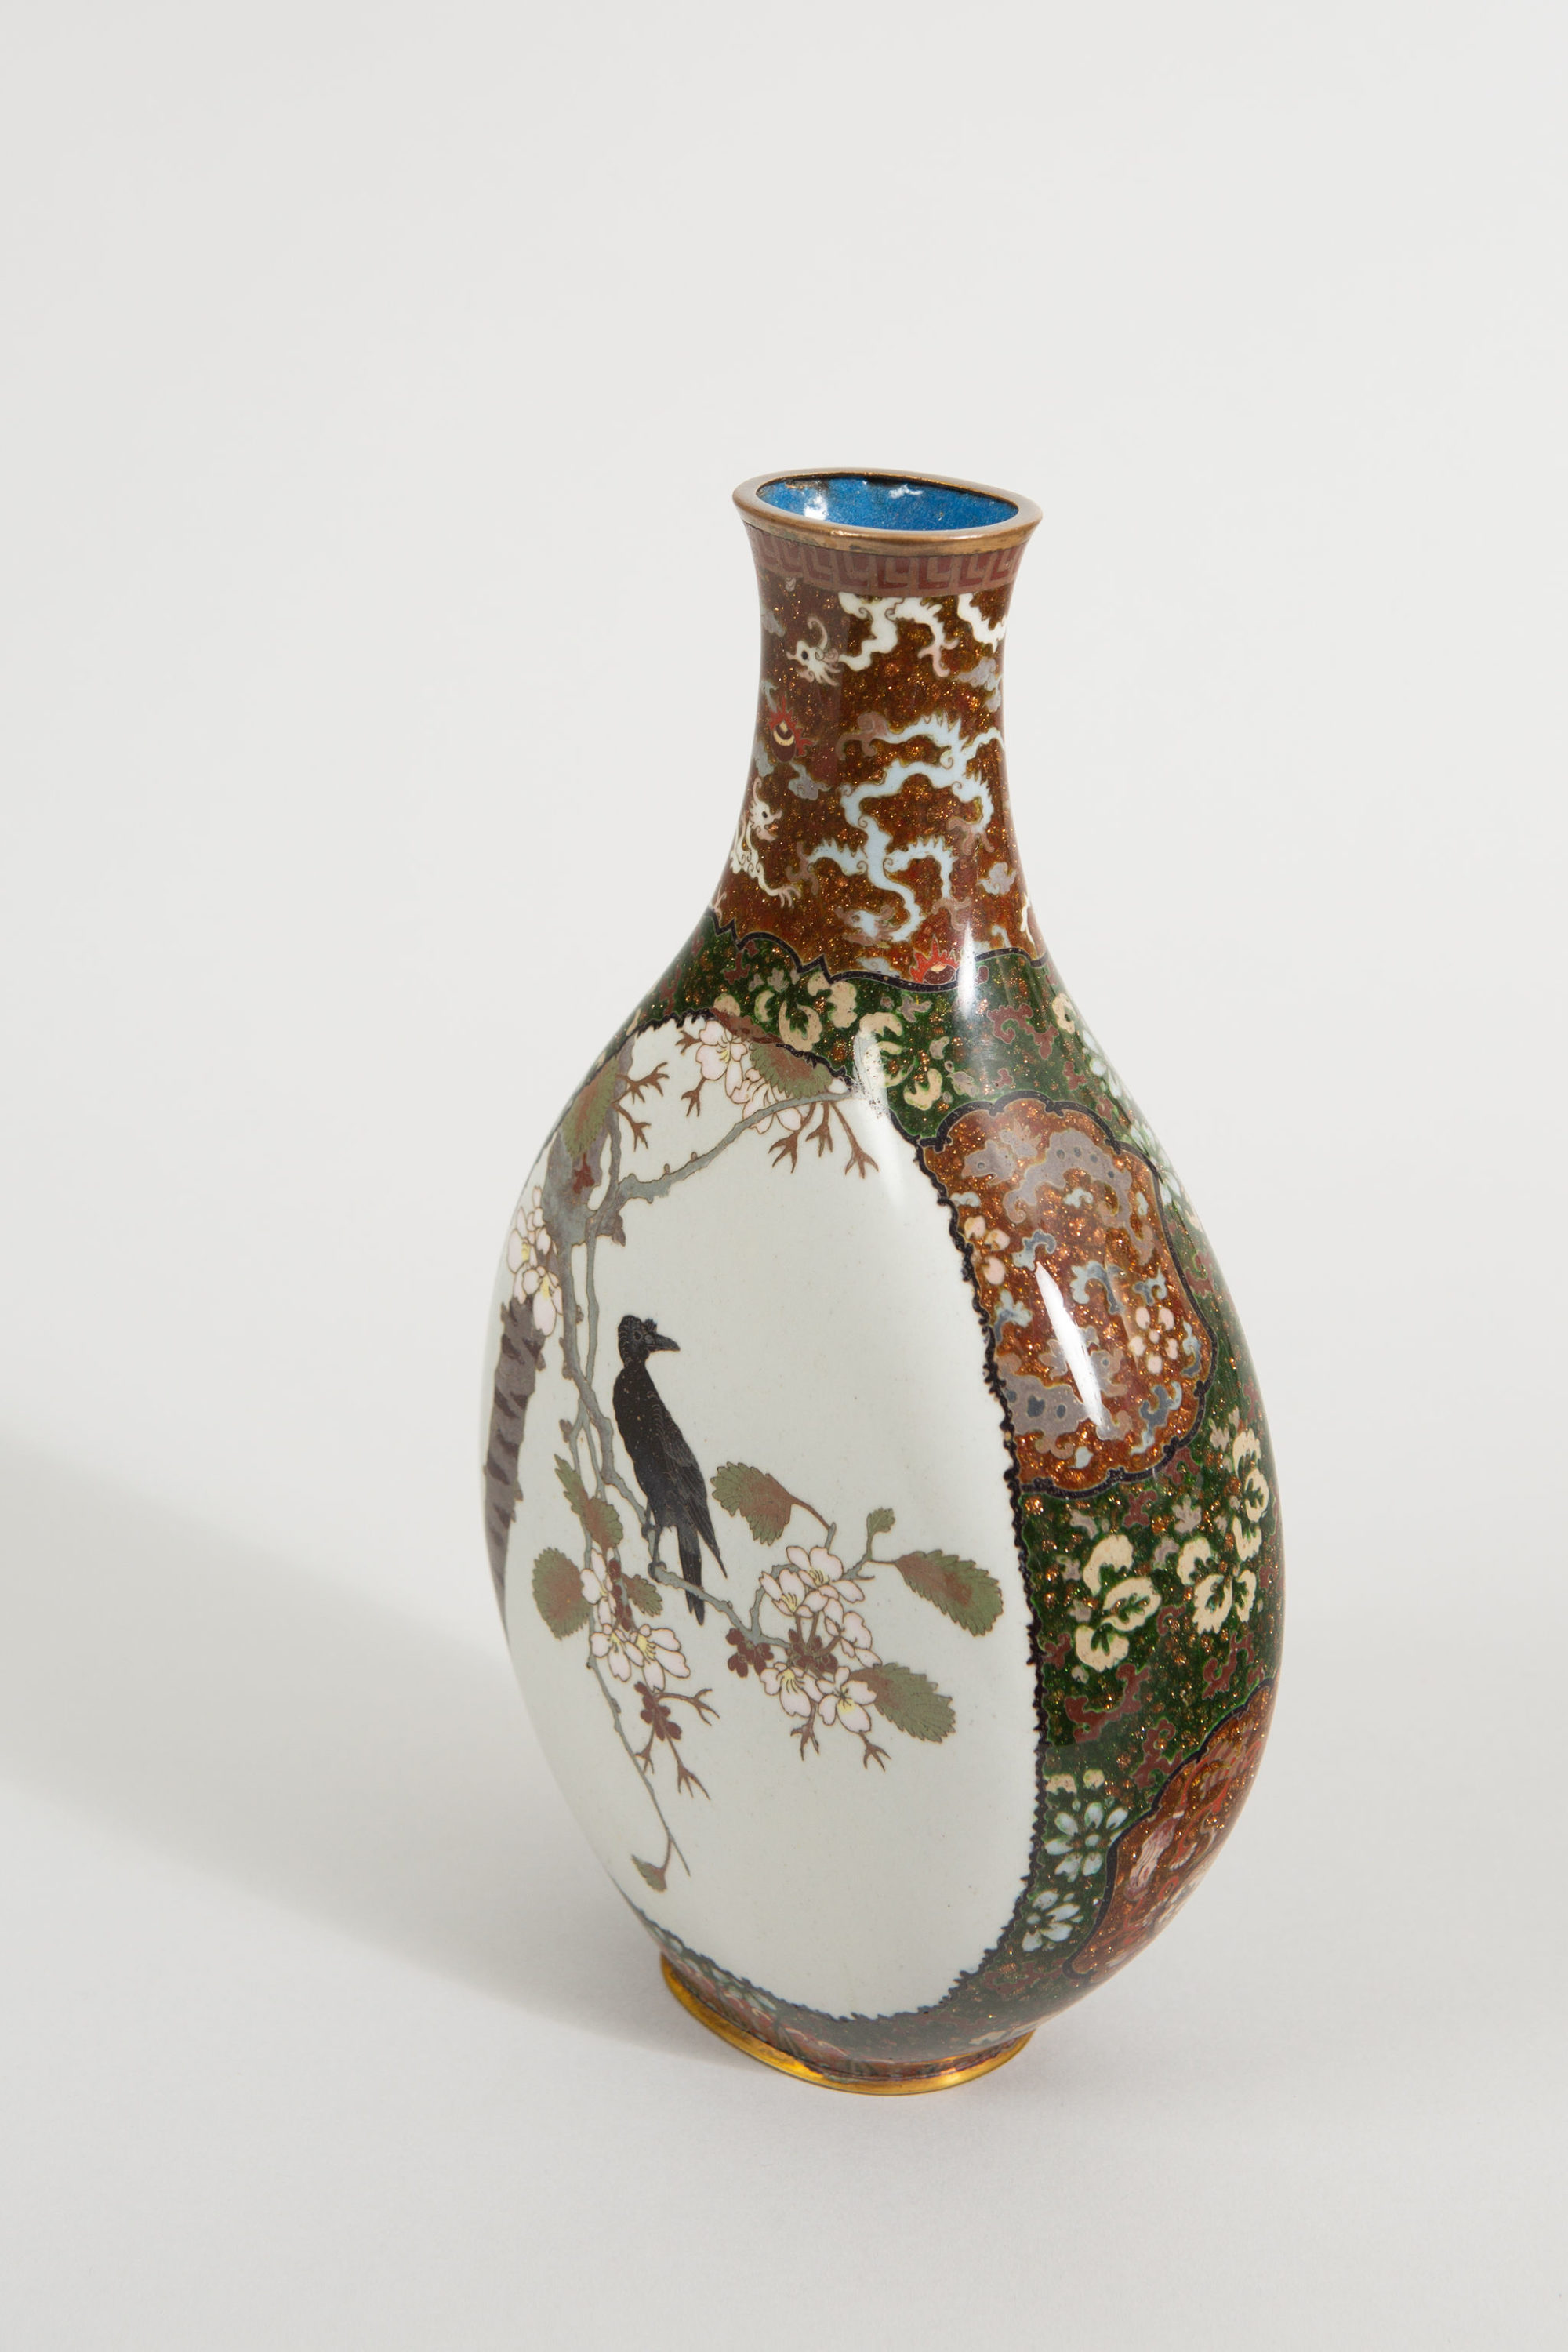 Japanese Cloisonné Vase with Raven and Waterfowl